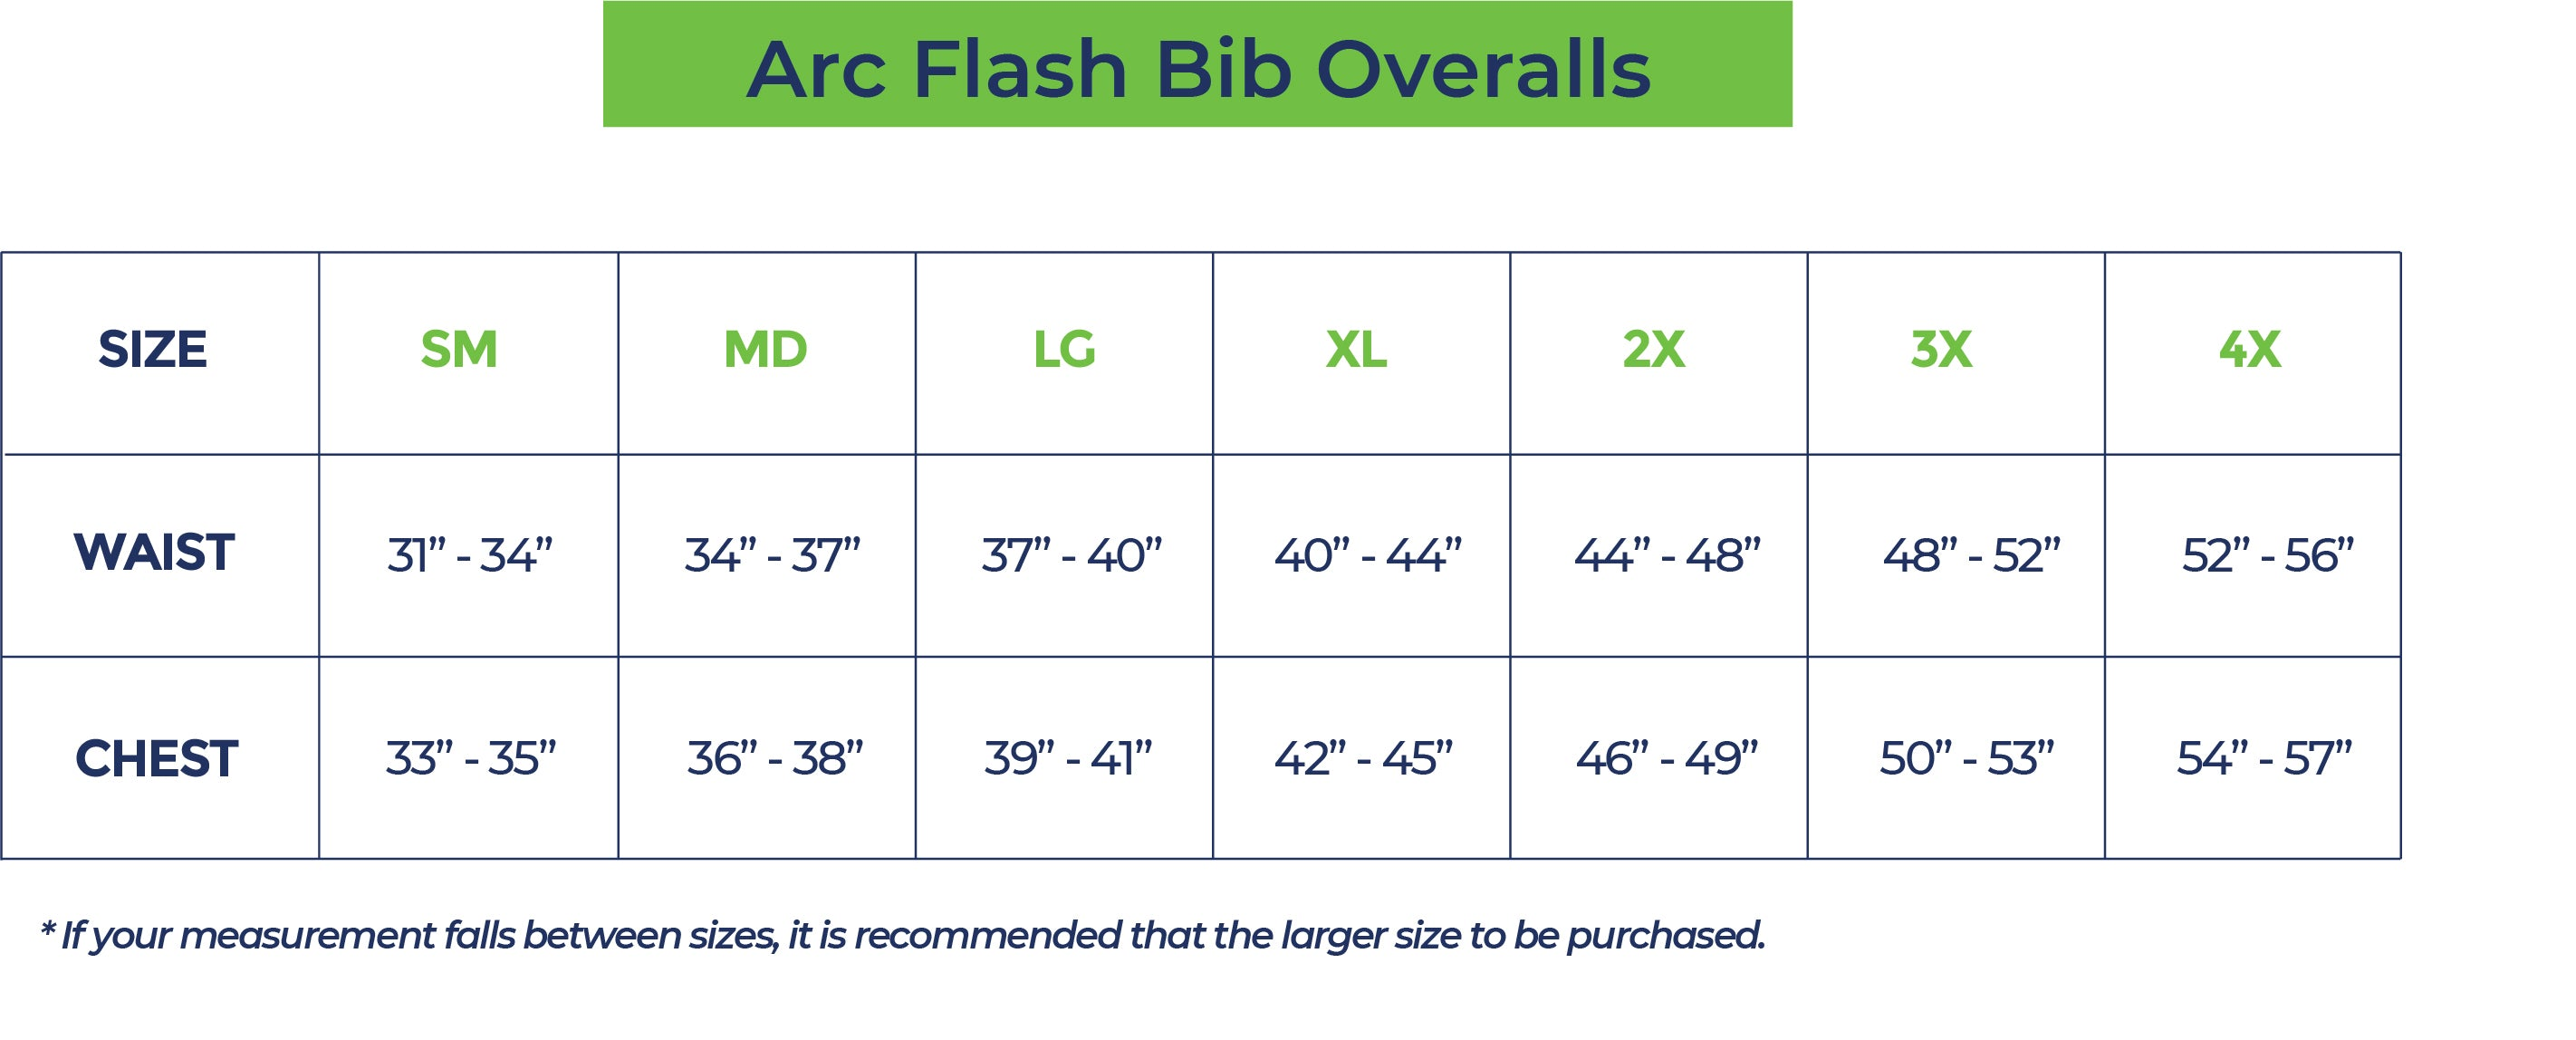 Arc Flash Bib Overalls Sizing Chart